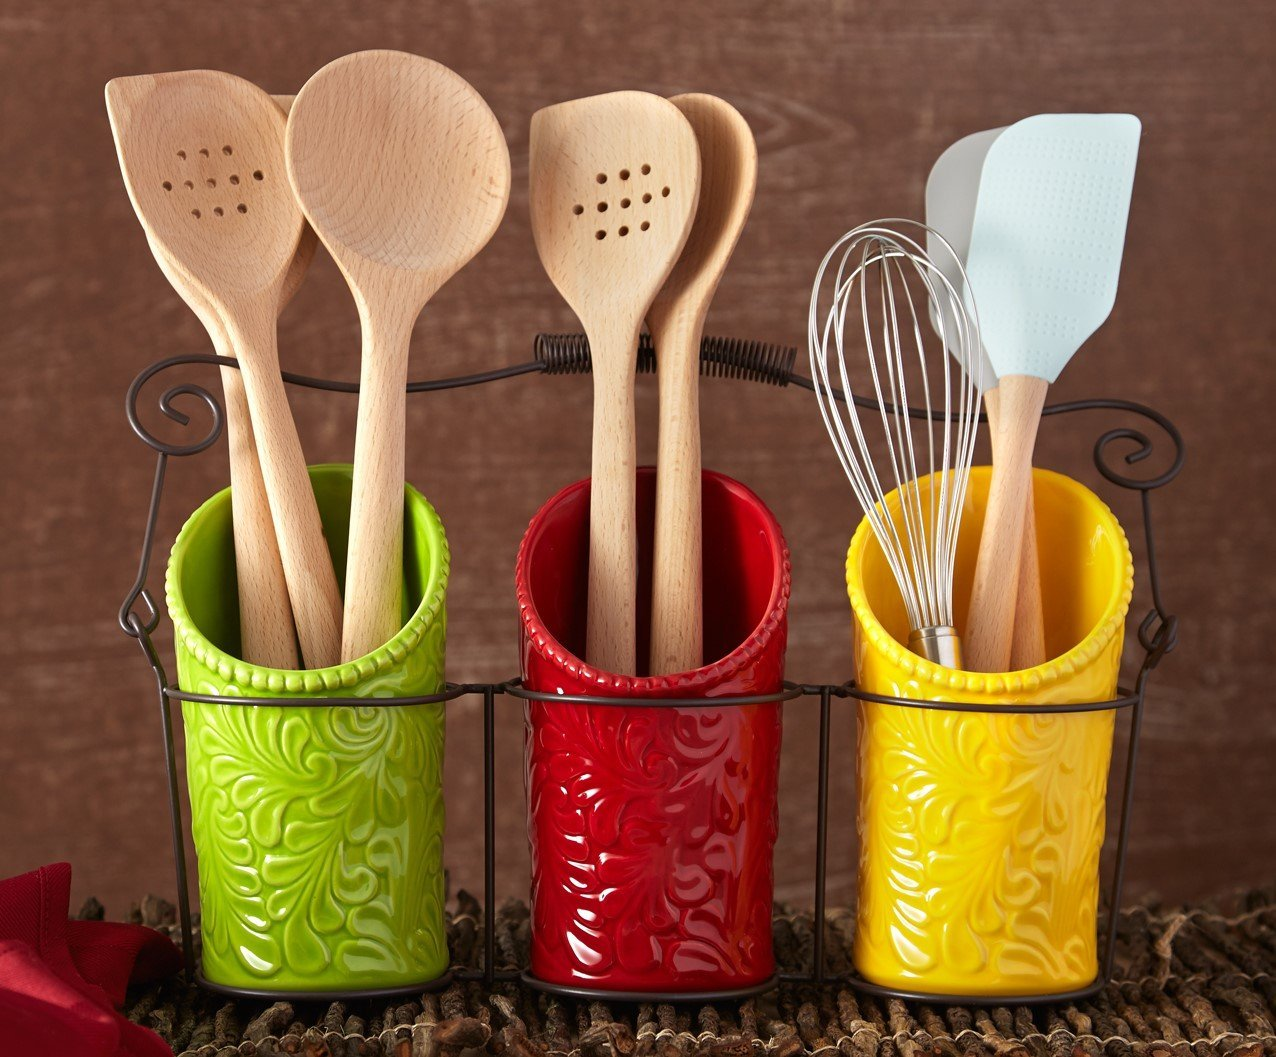 Amazon.com: Kitchen Utensil Holder Set (4 Pieces)   3 Ceramic Crocks U0026 1  Portable Wire Caddy   Multi Color: Kitchen U0026 Dining